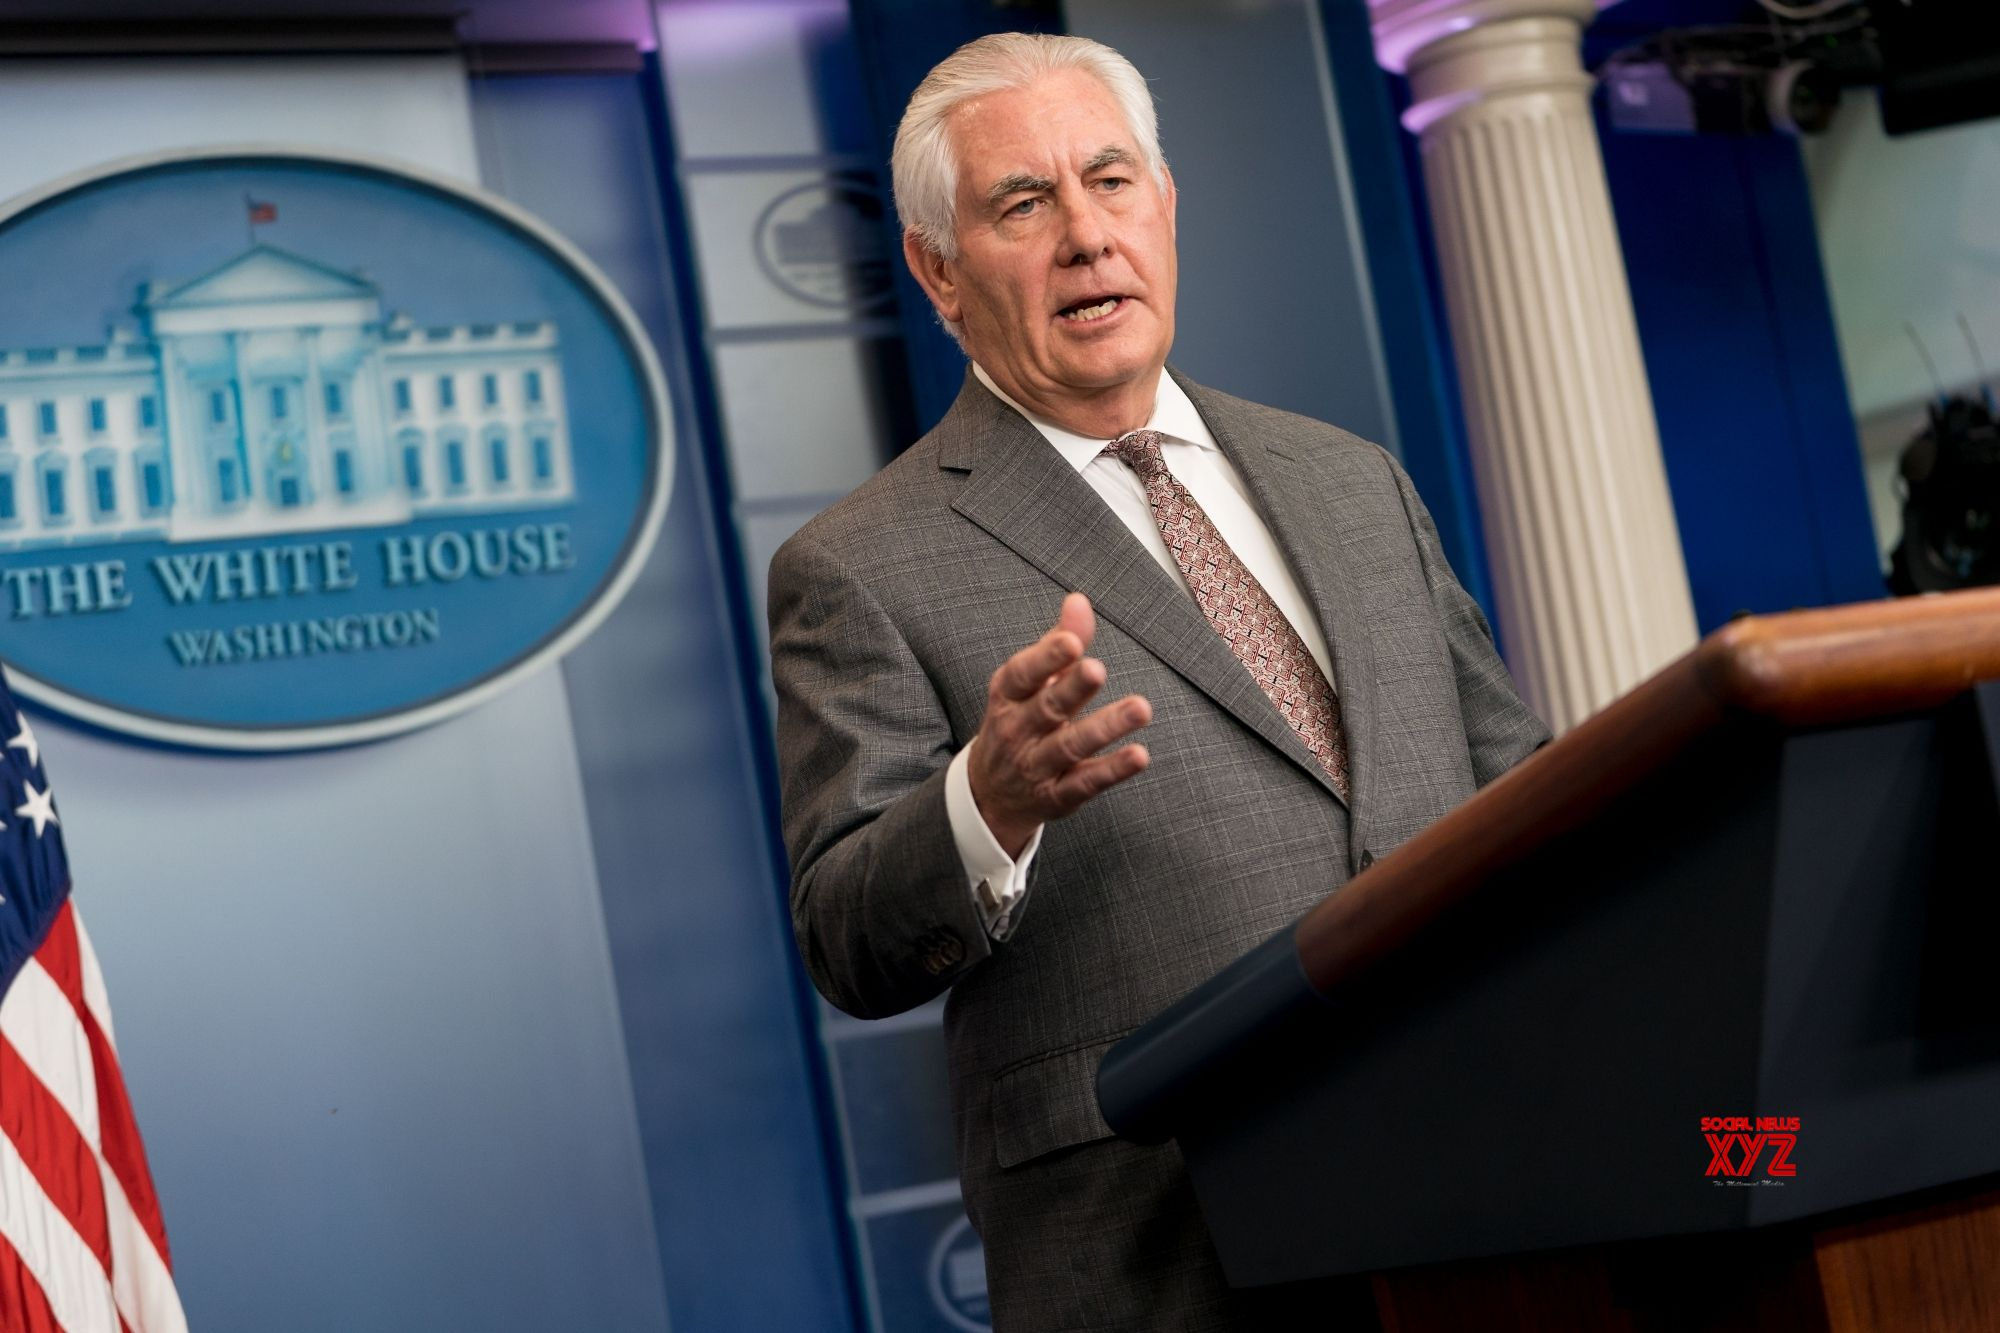 Trump fires State Secretary Tillerson, replaces him with Mike Pompeo